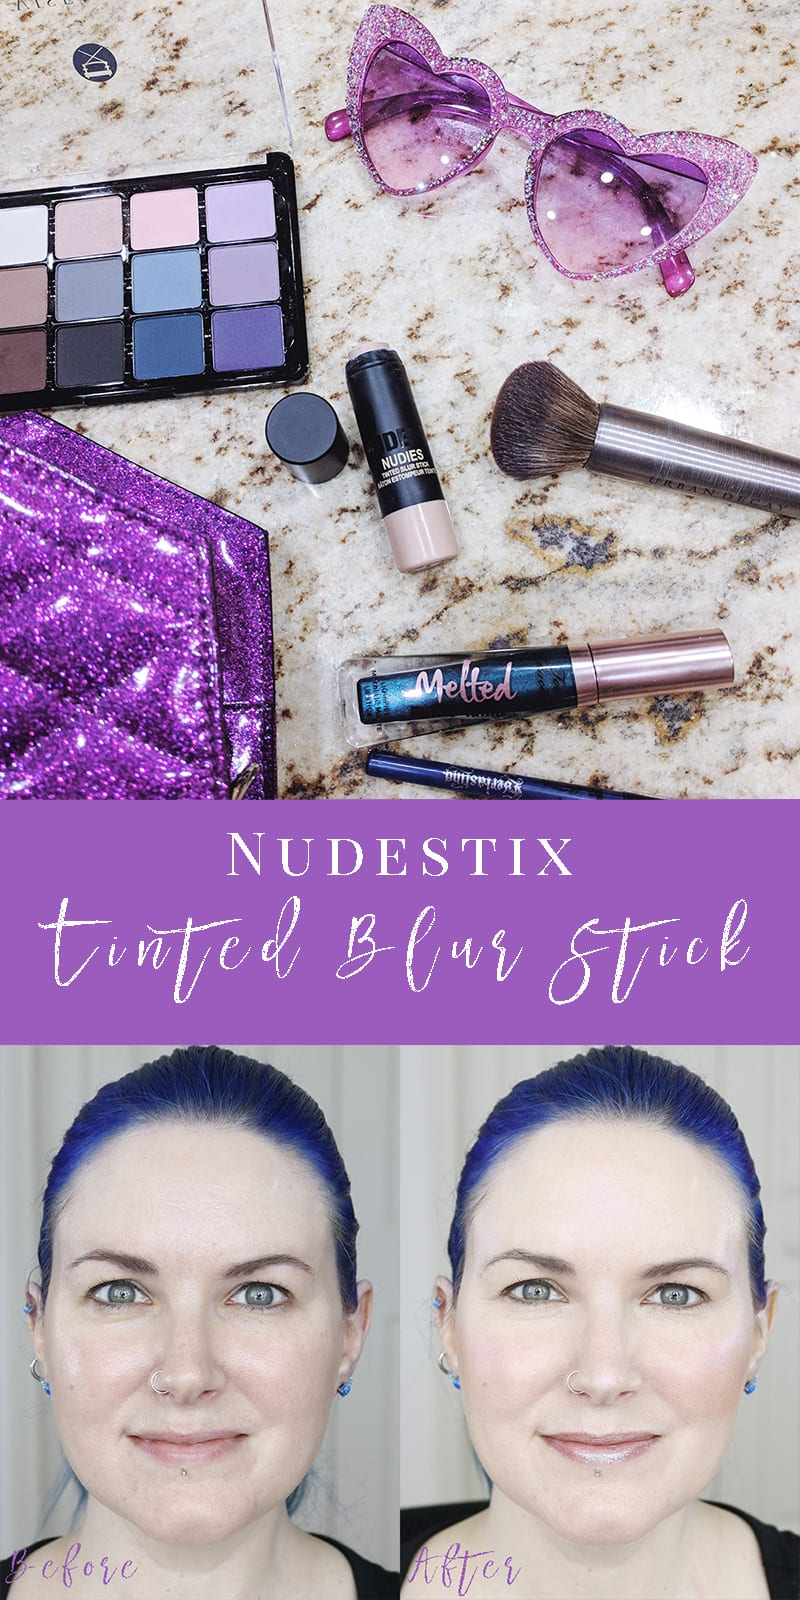 Nudestix Nudies Tinted Blur Stick Review - Find out why this is my favorite foundation! #GoNudeButBetter #Vegan #crueltyfree #beauty #makeup #review